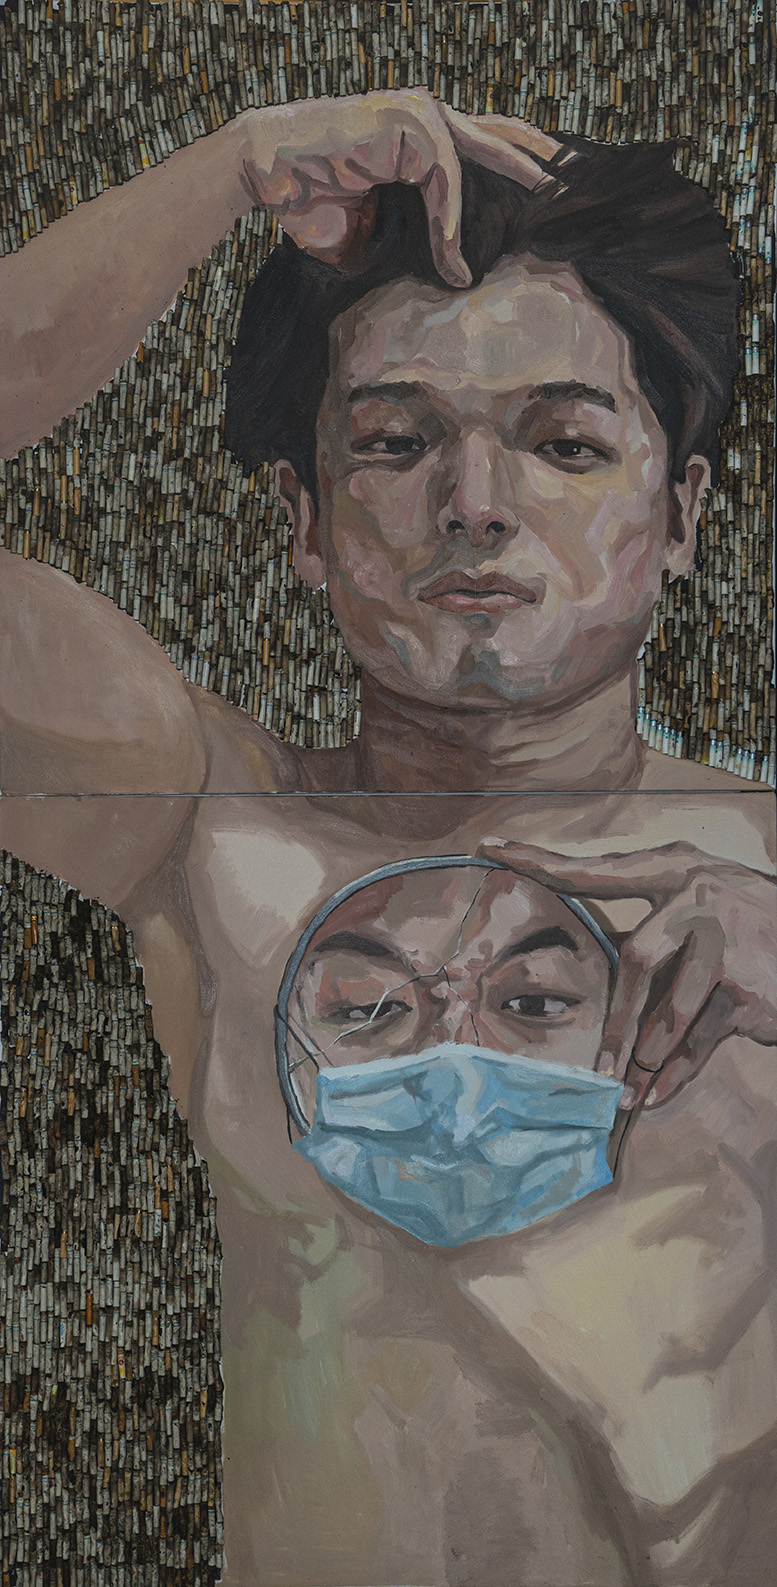 A self-portrait of a man laying in front of cigarette butts, with a mirror in hand showing another face of the man with mask on.